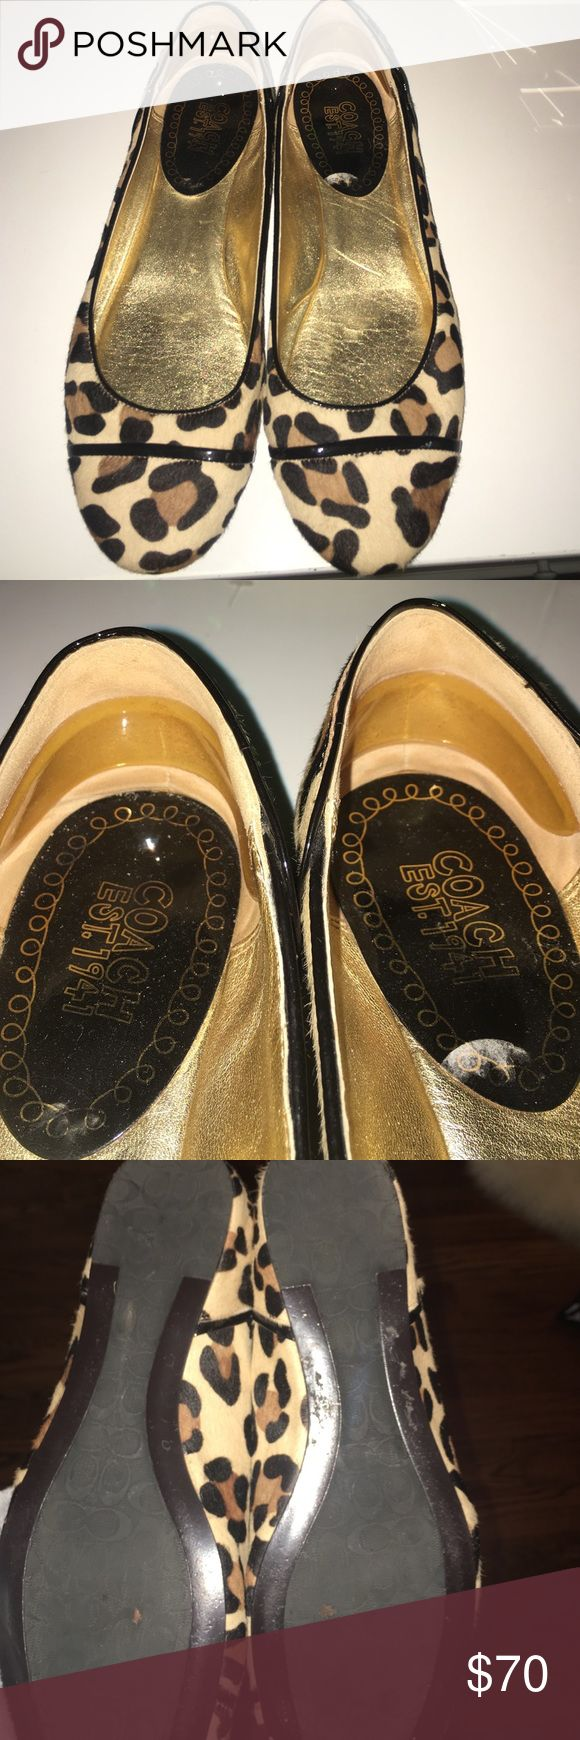 Coach Animal Print Ballet Flats Rarely worn, super cute animal print coach ballet flats with ankle gel inserts! Size 8 Coach Shoes Flats & Loafers